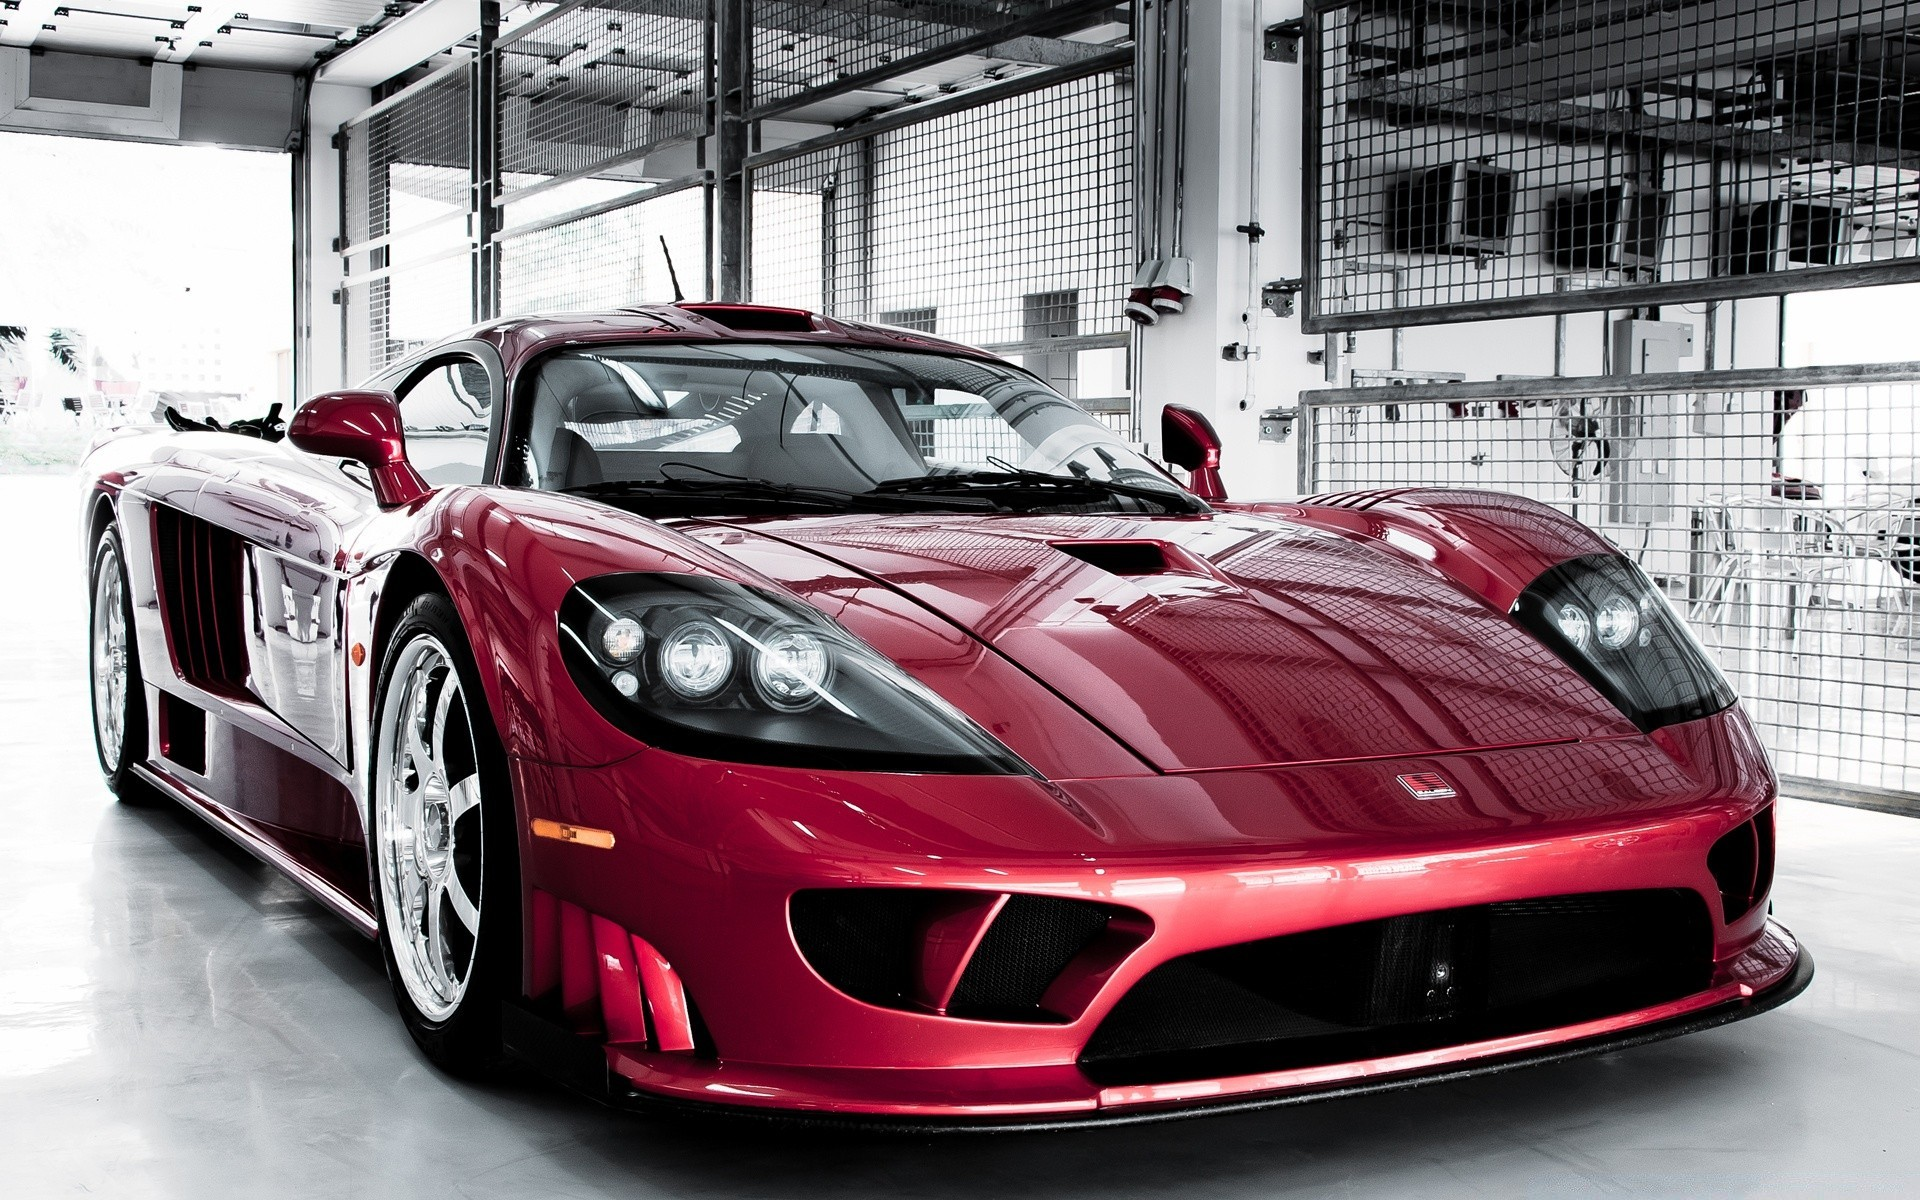 Saleen S7 Twin Turbo красный